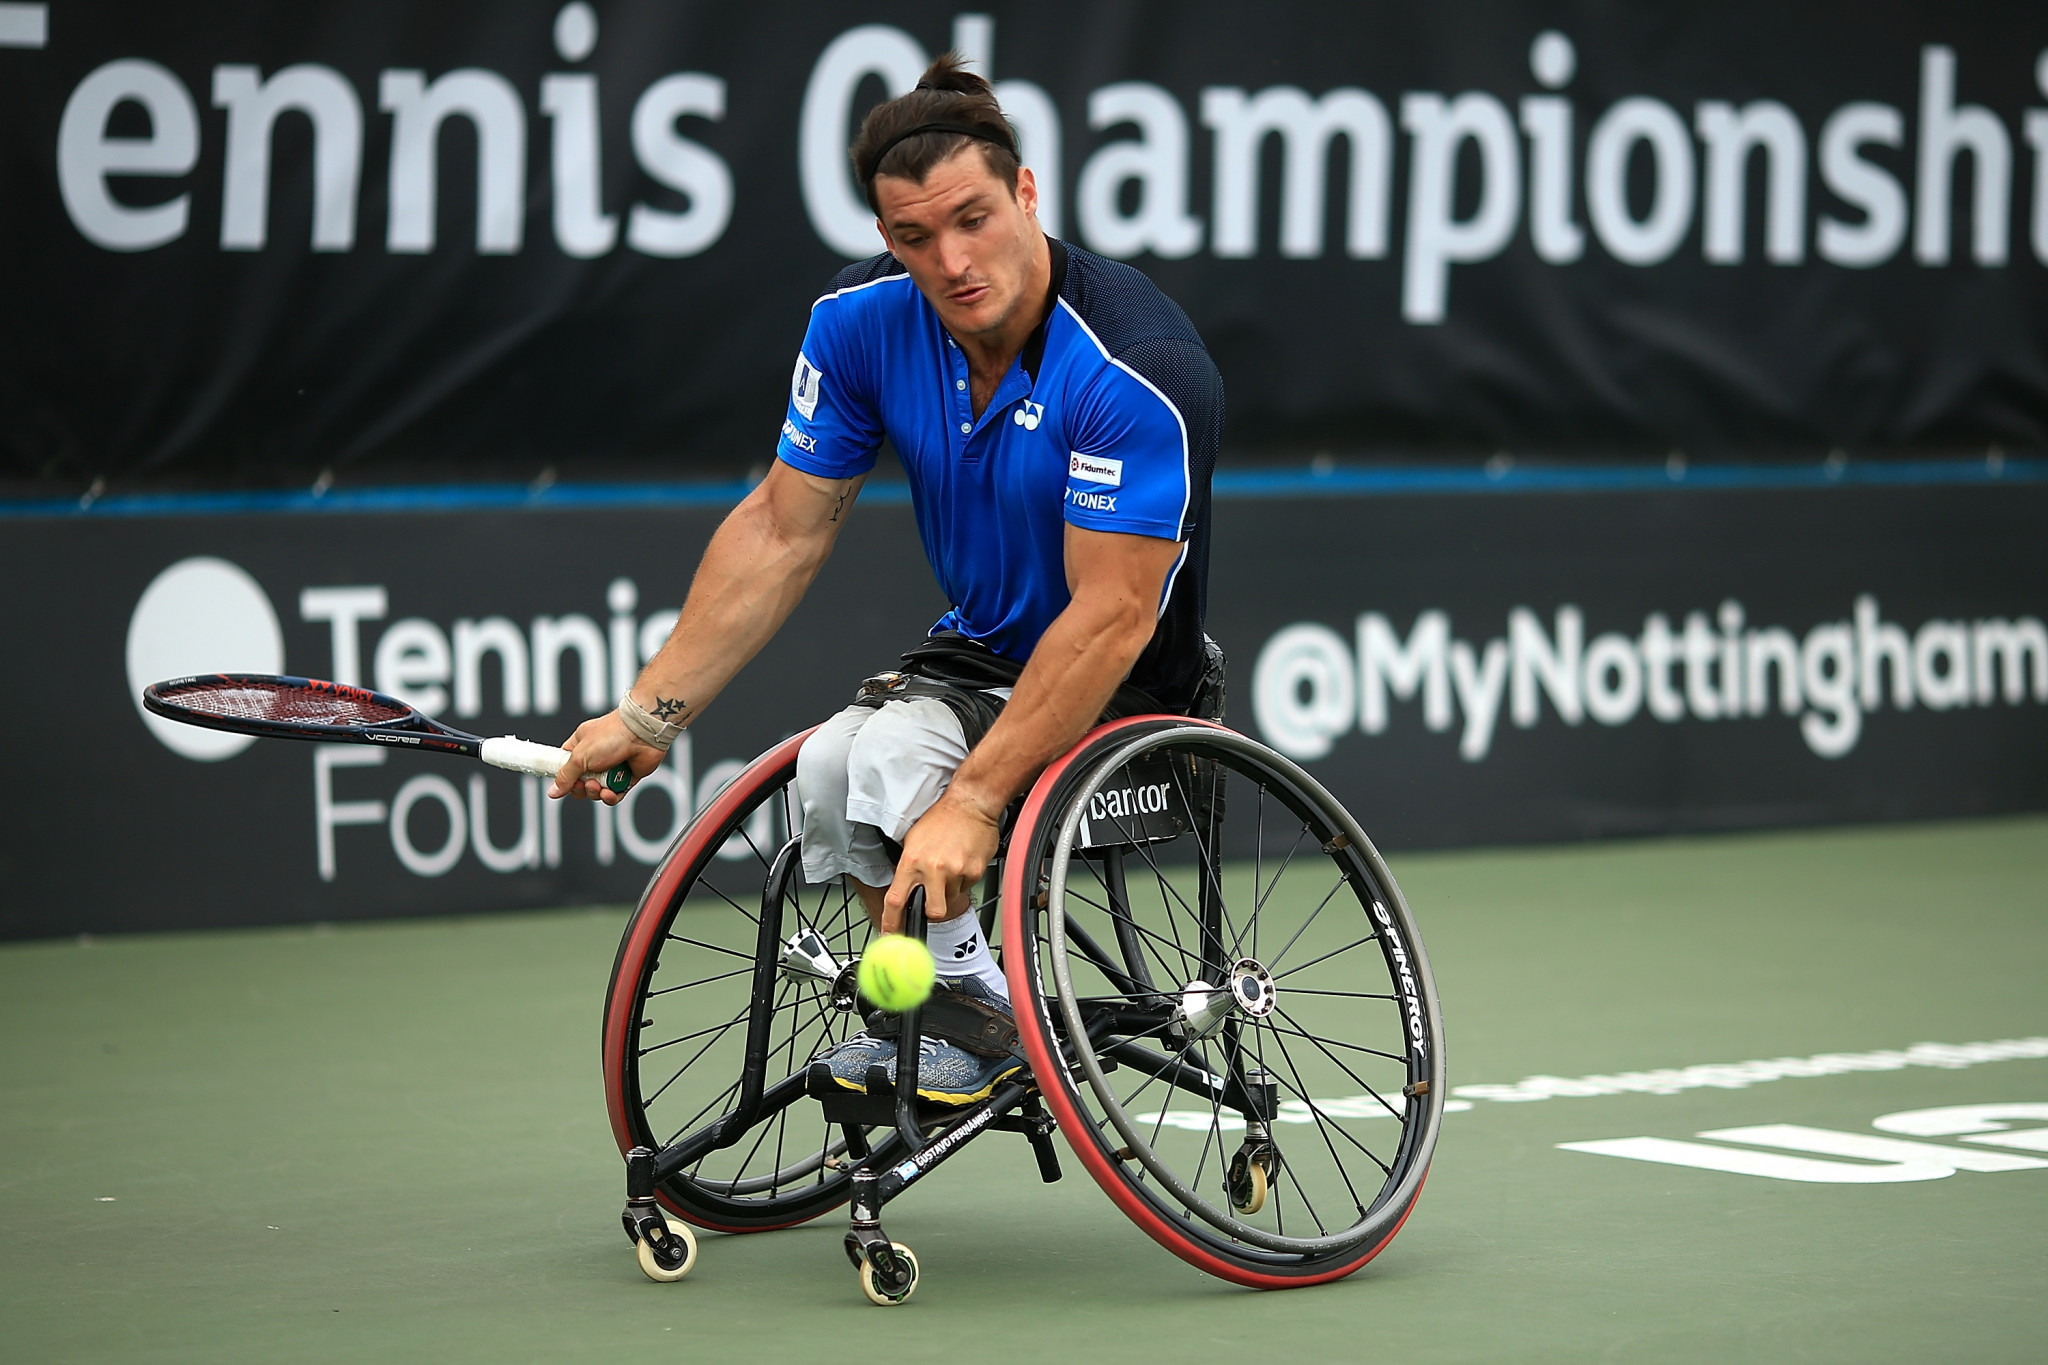 Argentinean wheelchair tennis player Gustavo Fernández has also been nominated ©Getty Images